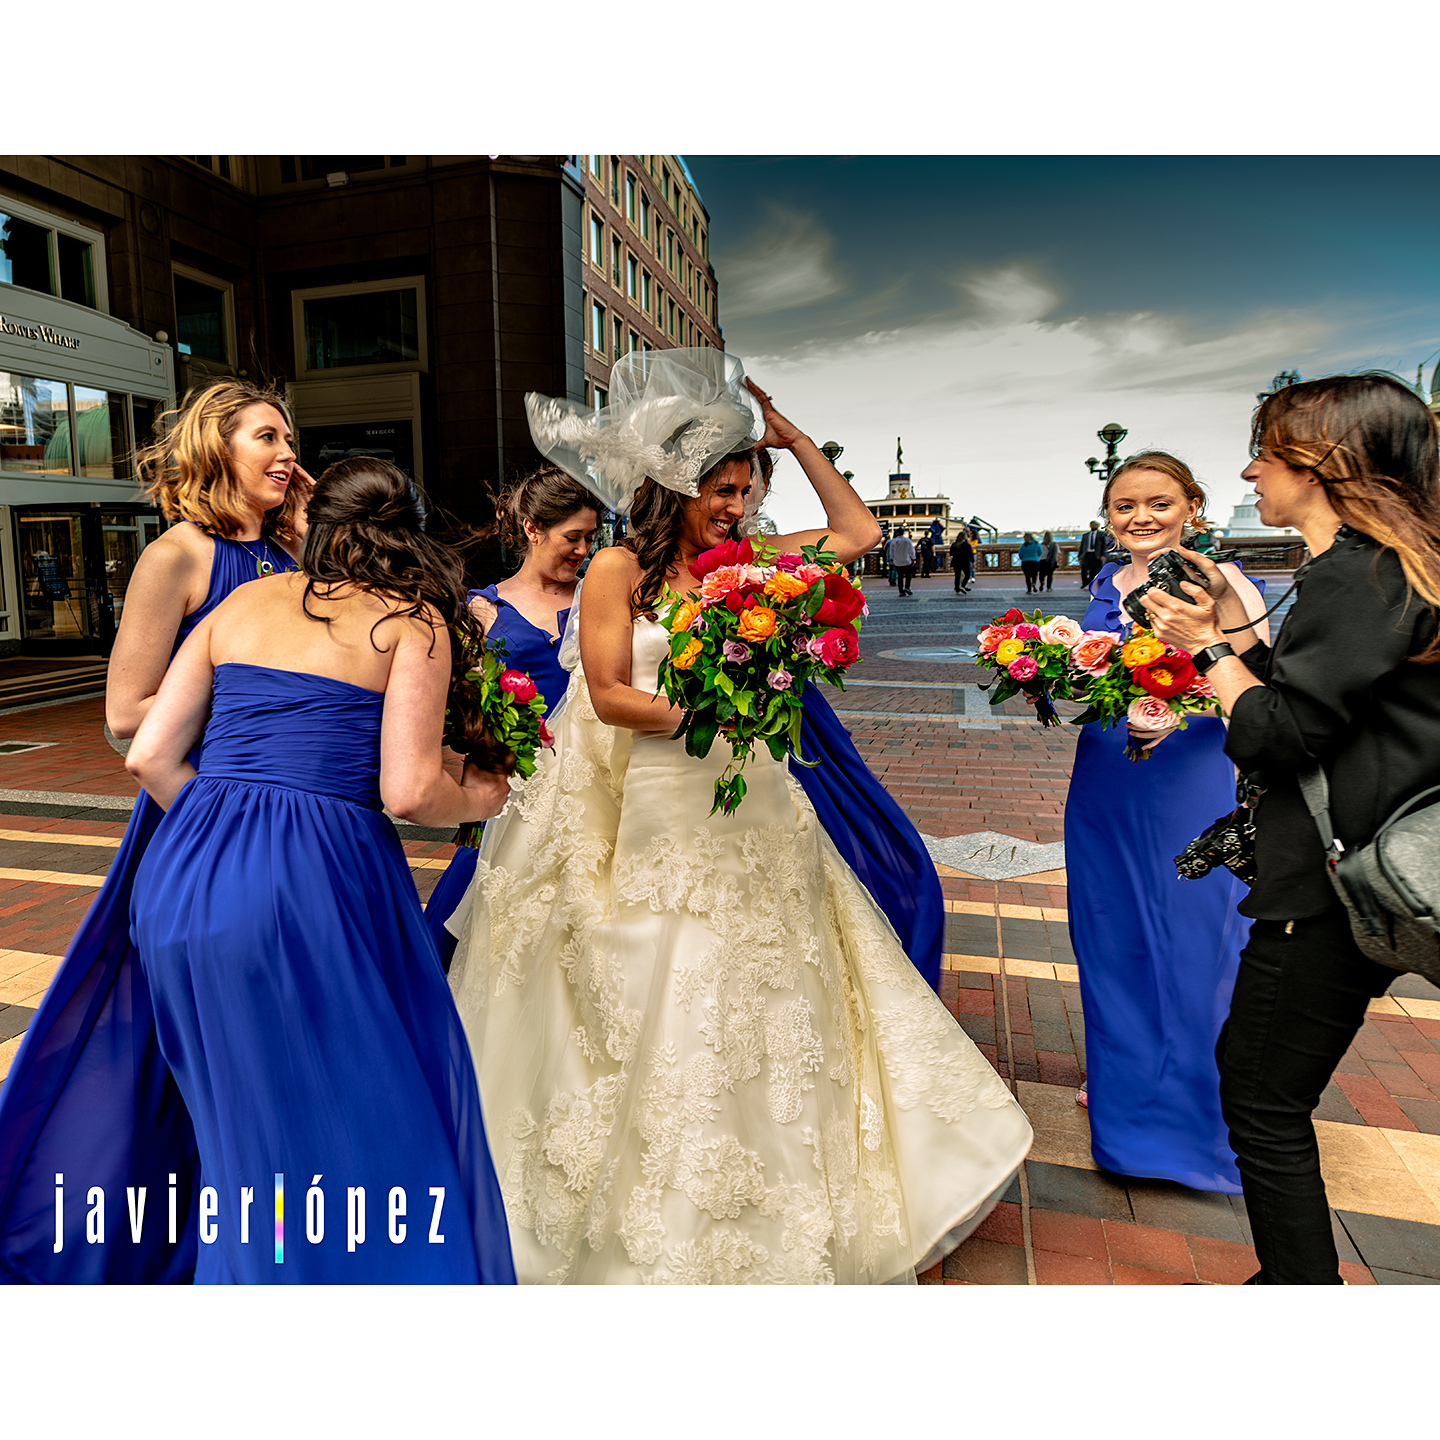 2019 Harbordwalk Boston . Massachusetts (wedding)